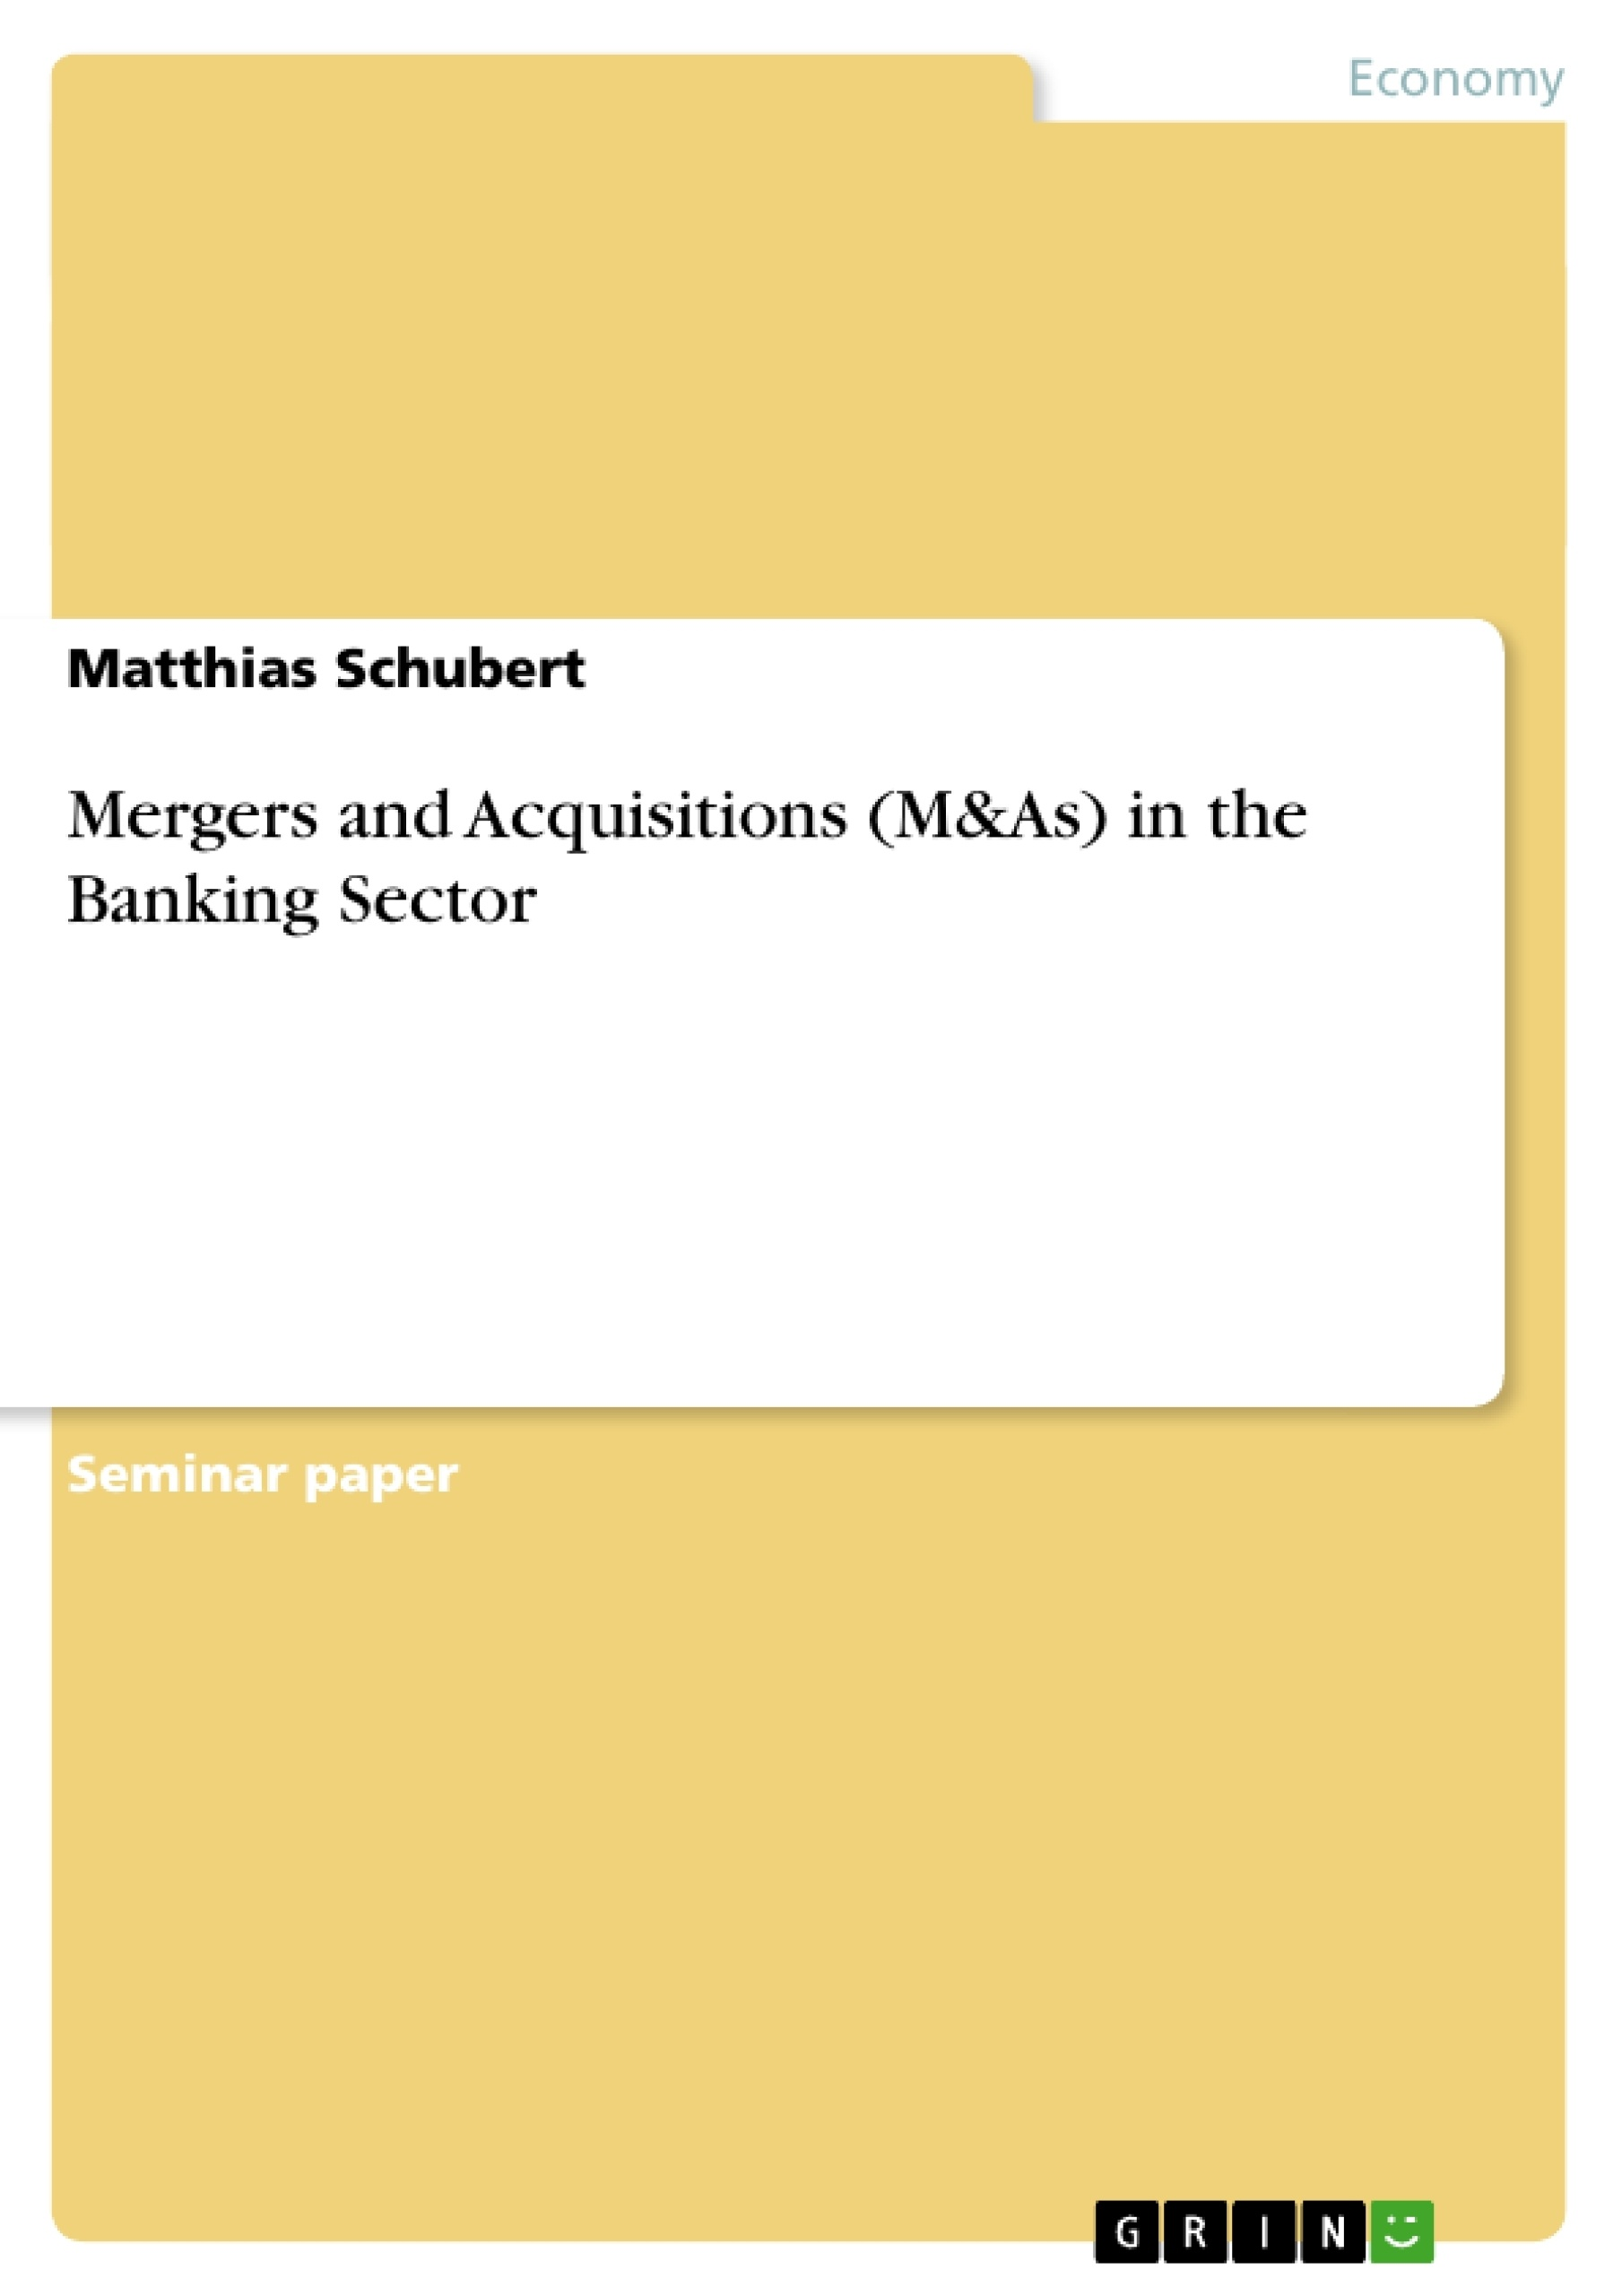 thesis on mergers and acquisitions in india